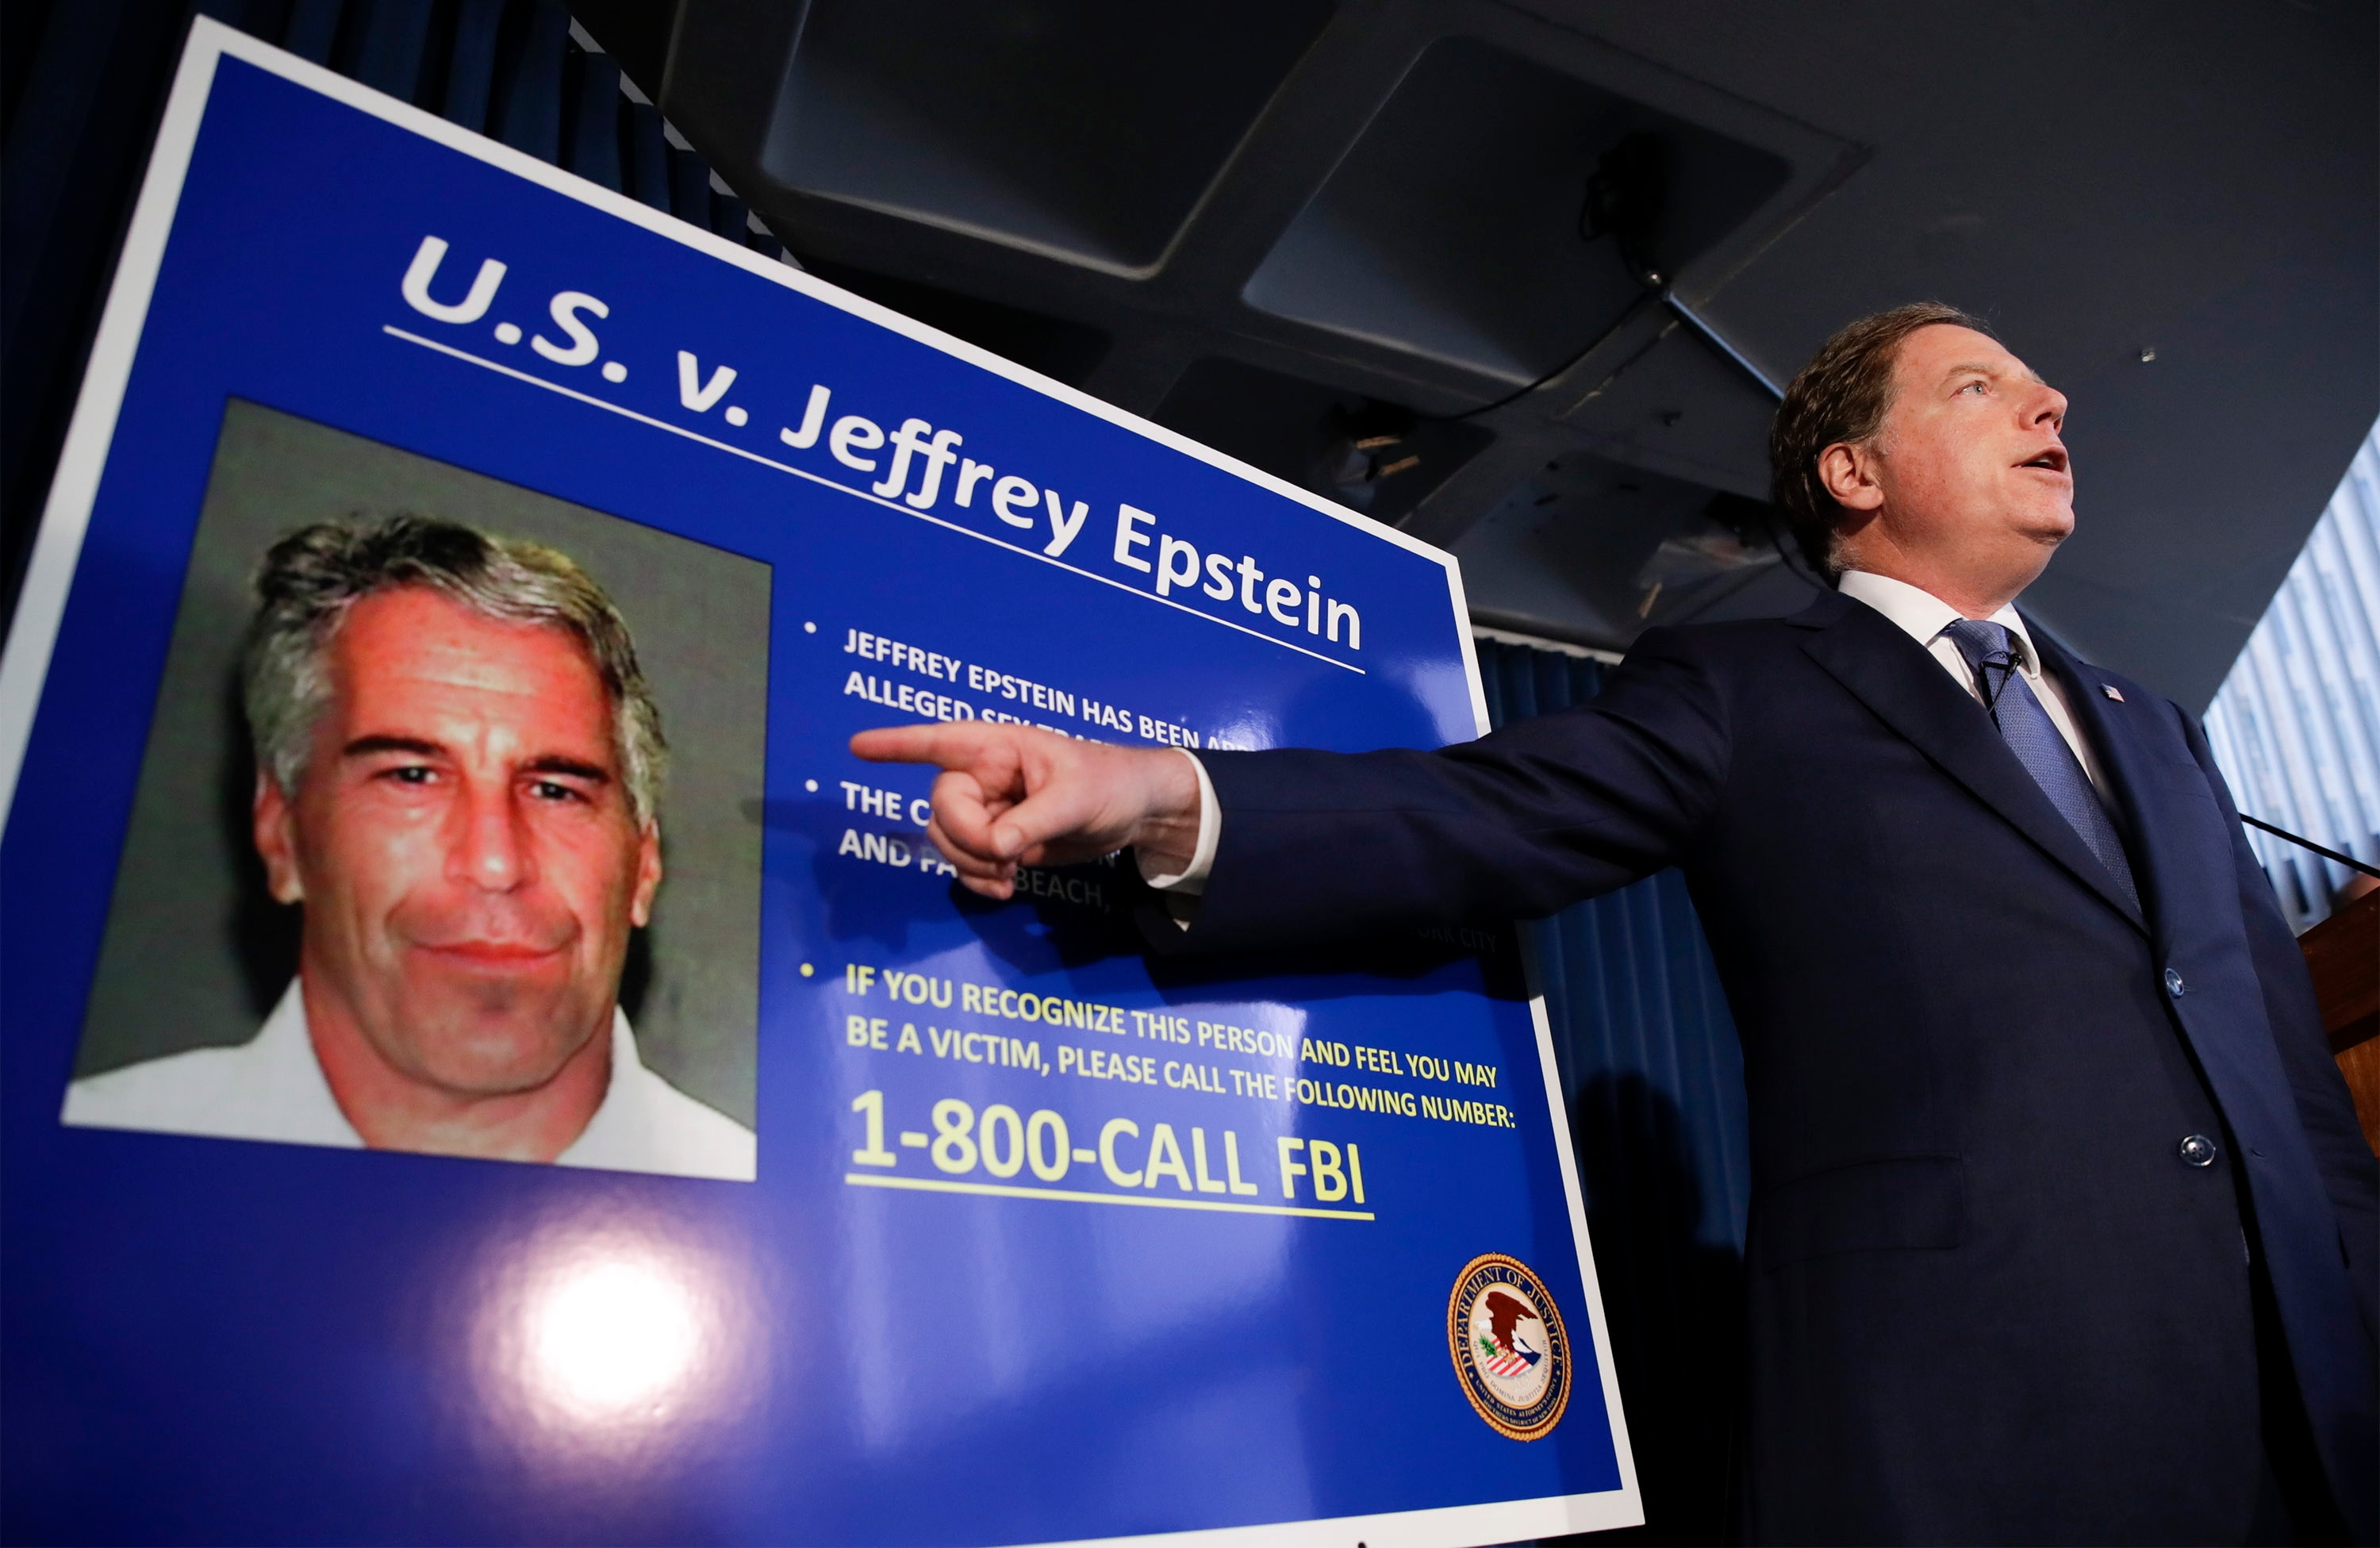 US  attorney: Epstein abuse probe steadfast despite his death